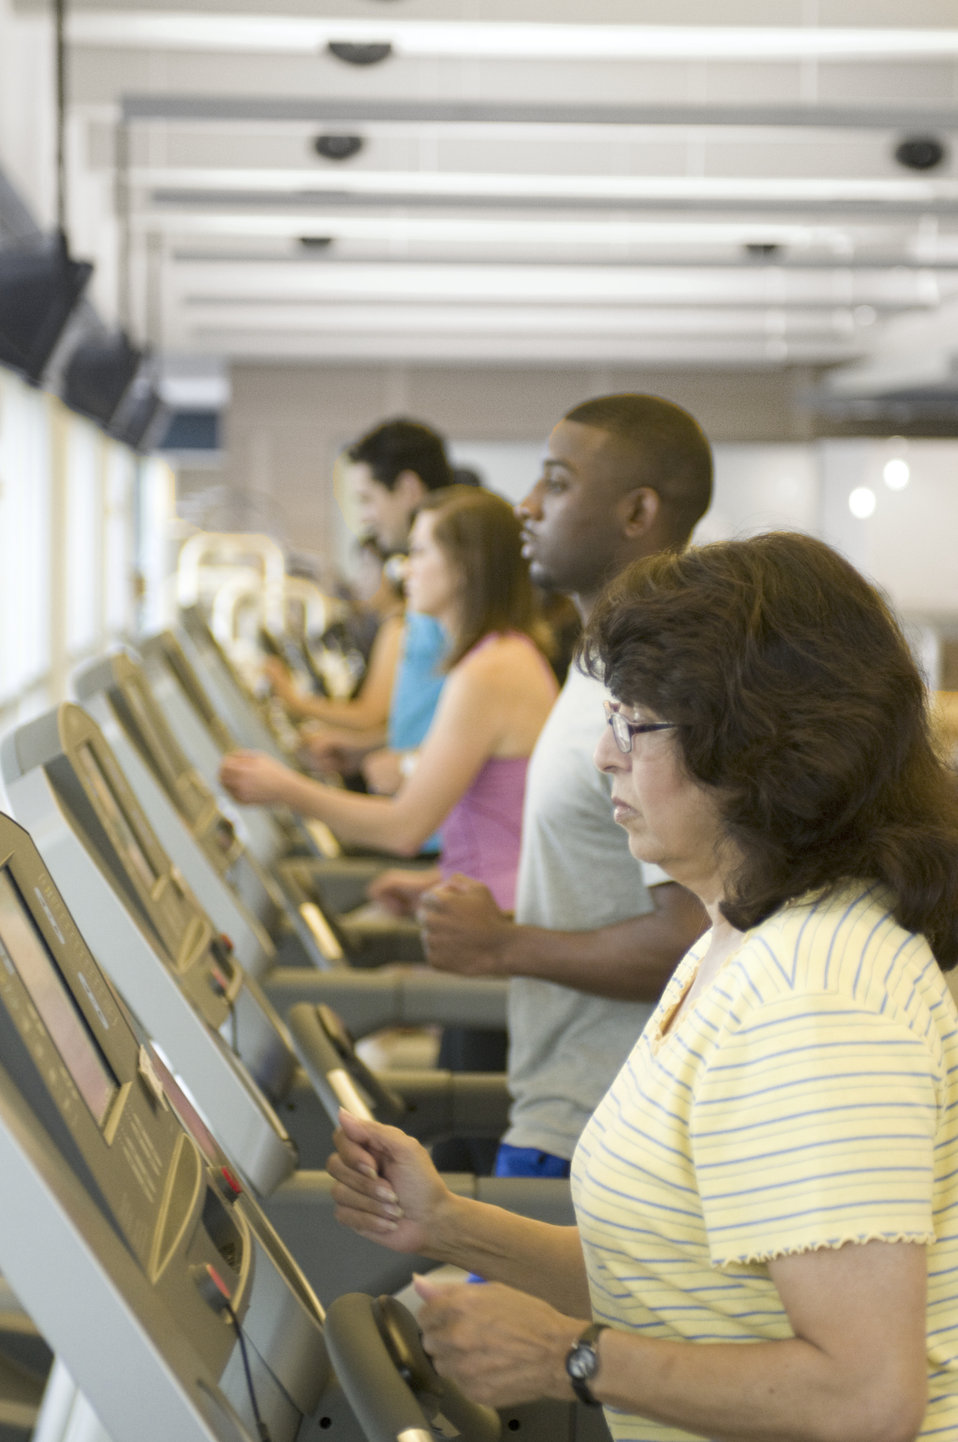 This image was captured on one of the Centers for Disease Control's (CDC) campuses, in the facility's fitness center, where a number of sche